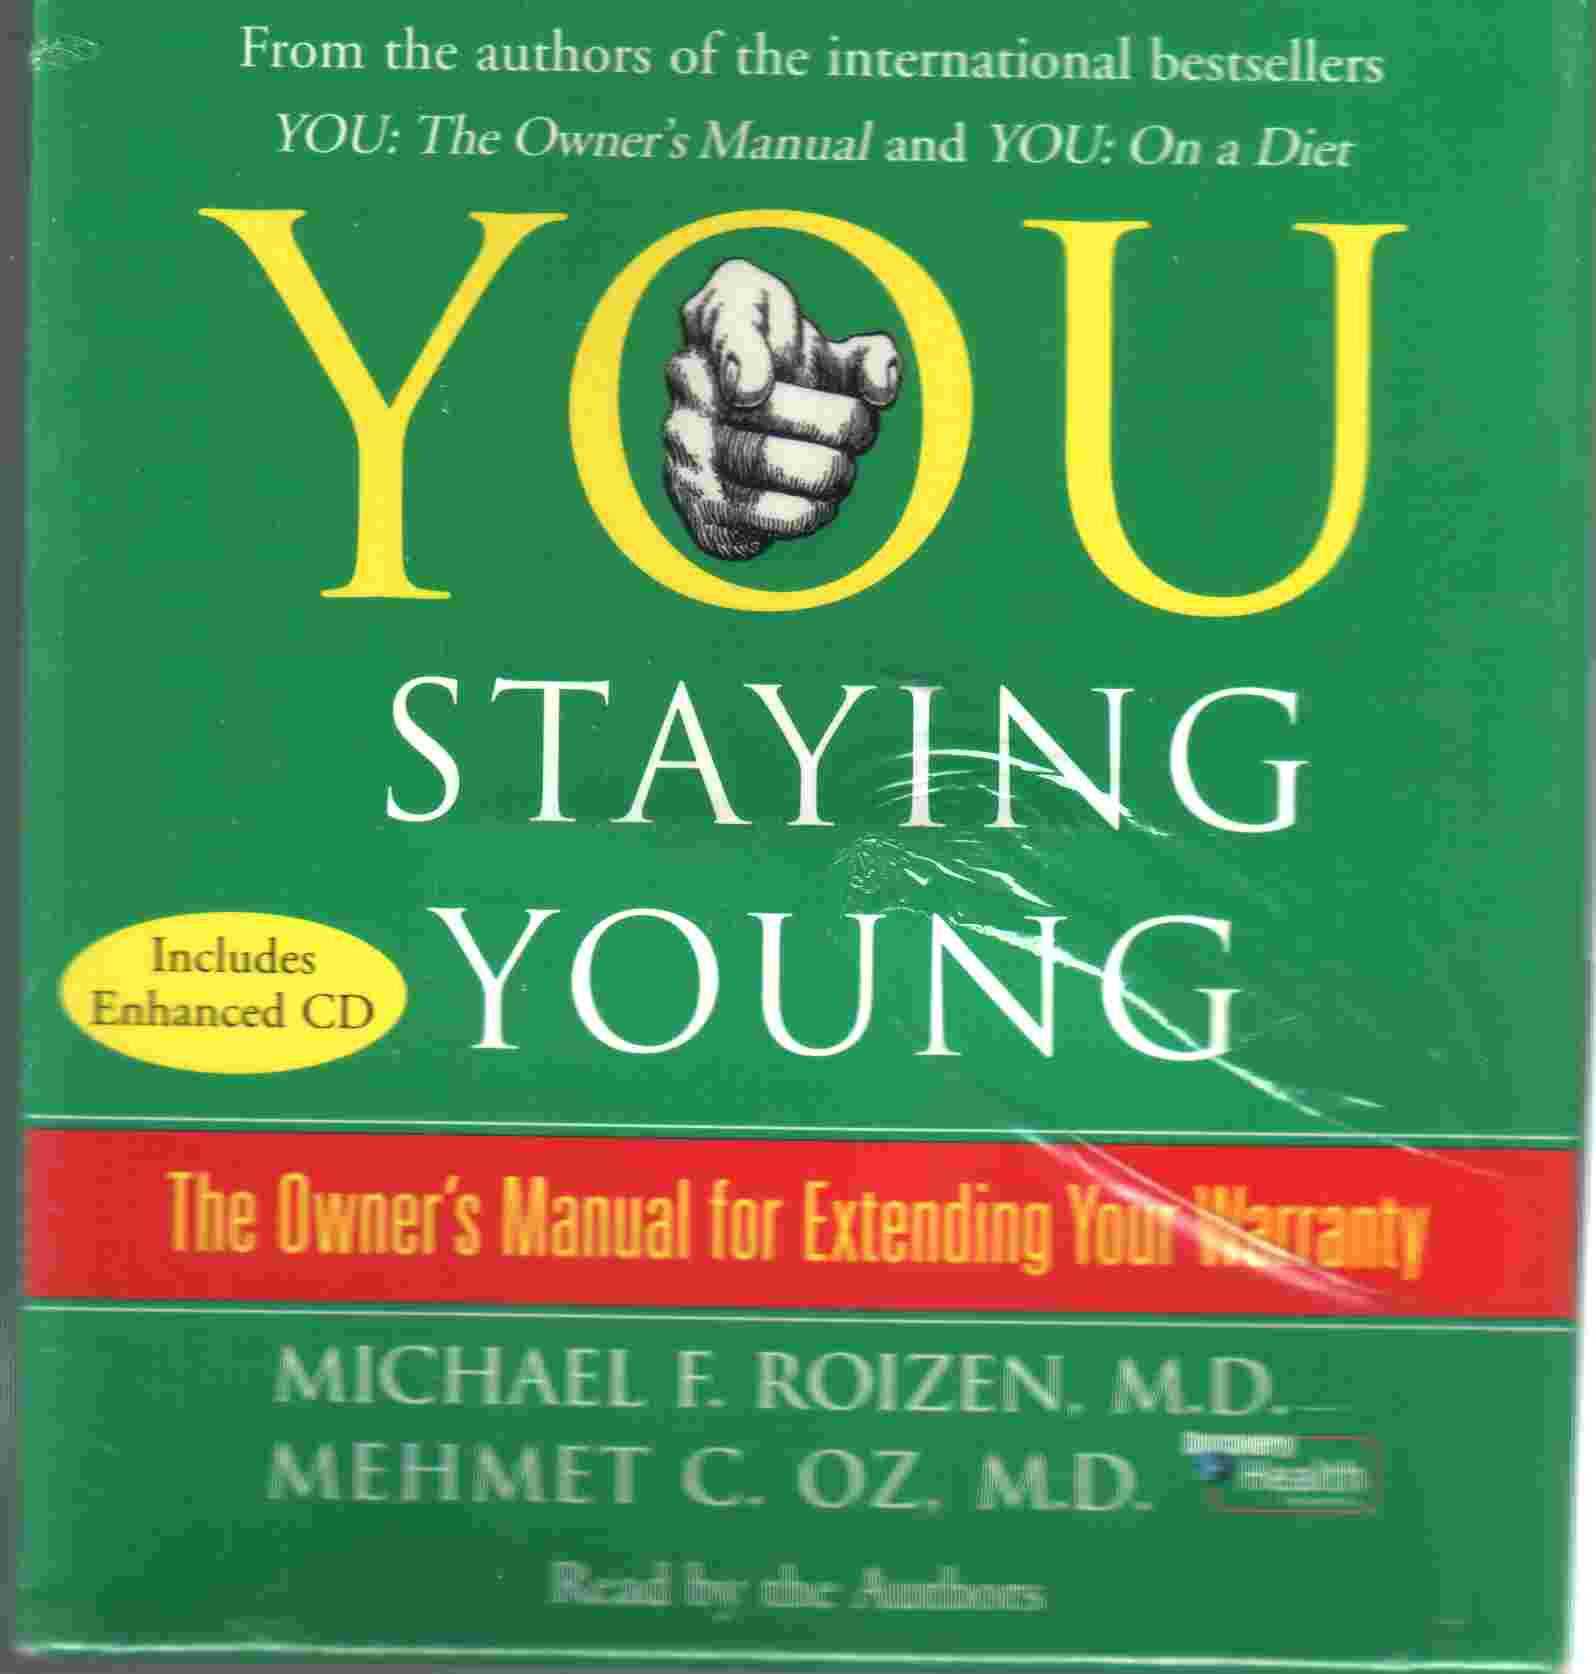 YOU - STAYING YOUNG by Michael F Roizen MD, Mehmet C. Oz MD